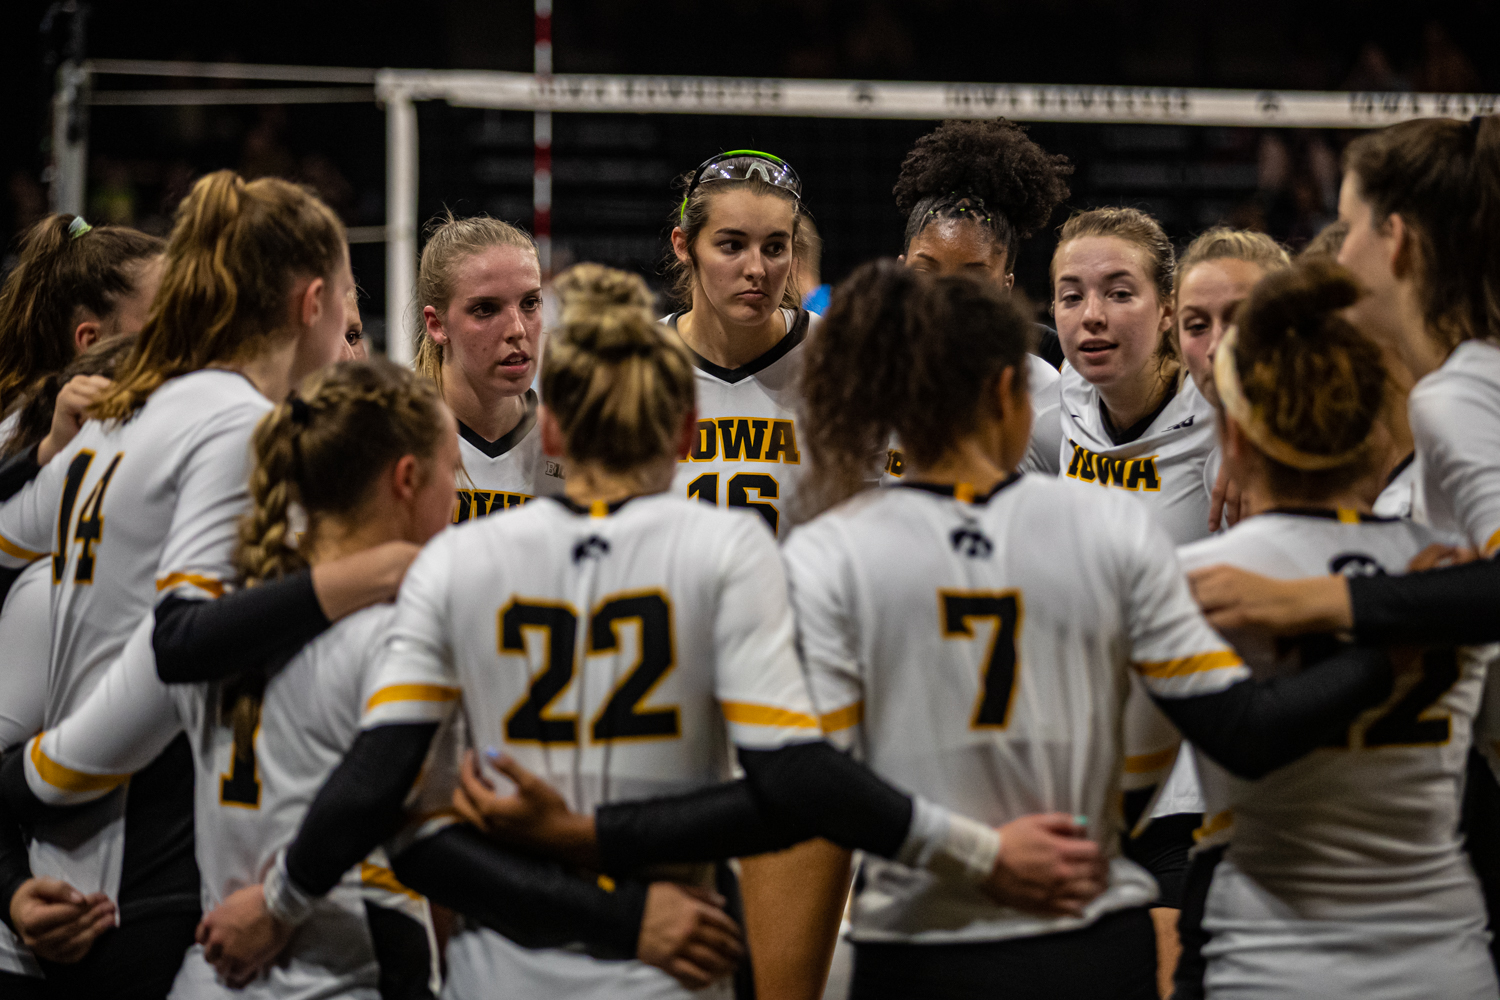 Iowa+players+huddle+between+sets+during+a+volleyball+match+between+Iowa+and+Colorado+in+Carver-Hawkeye+Arena+on+Friday%2C+September+6%2C+2019.+The+Hawkeyes+dropped+their+season+opener+to+the+Buffaloes%2C+3-0.